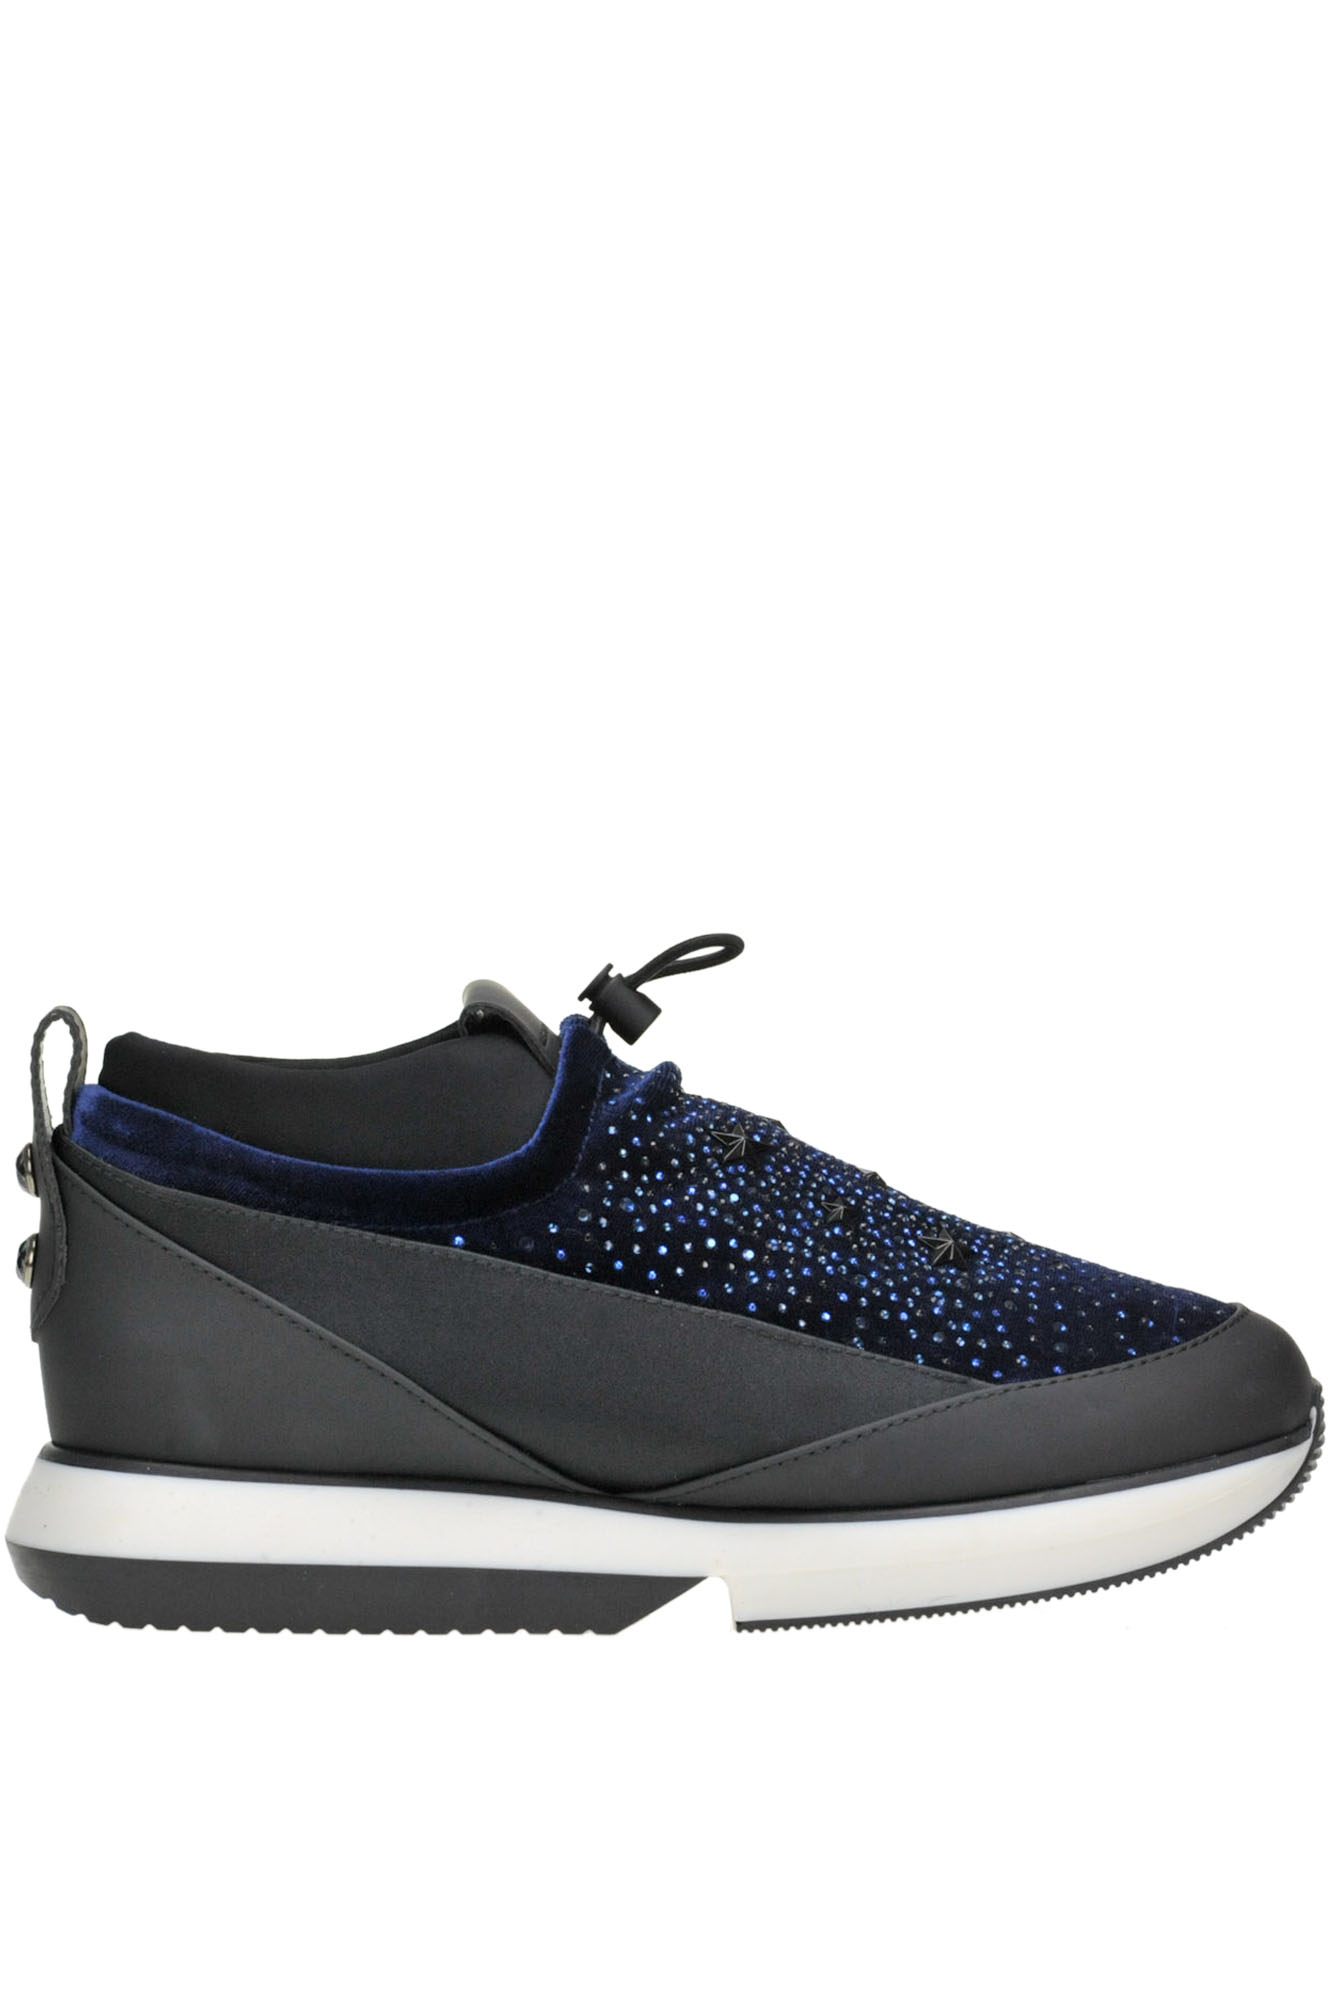 Alexander Smith EMBELLISHED SLIP-ON SNEAKERS